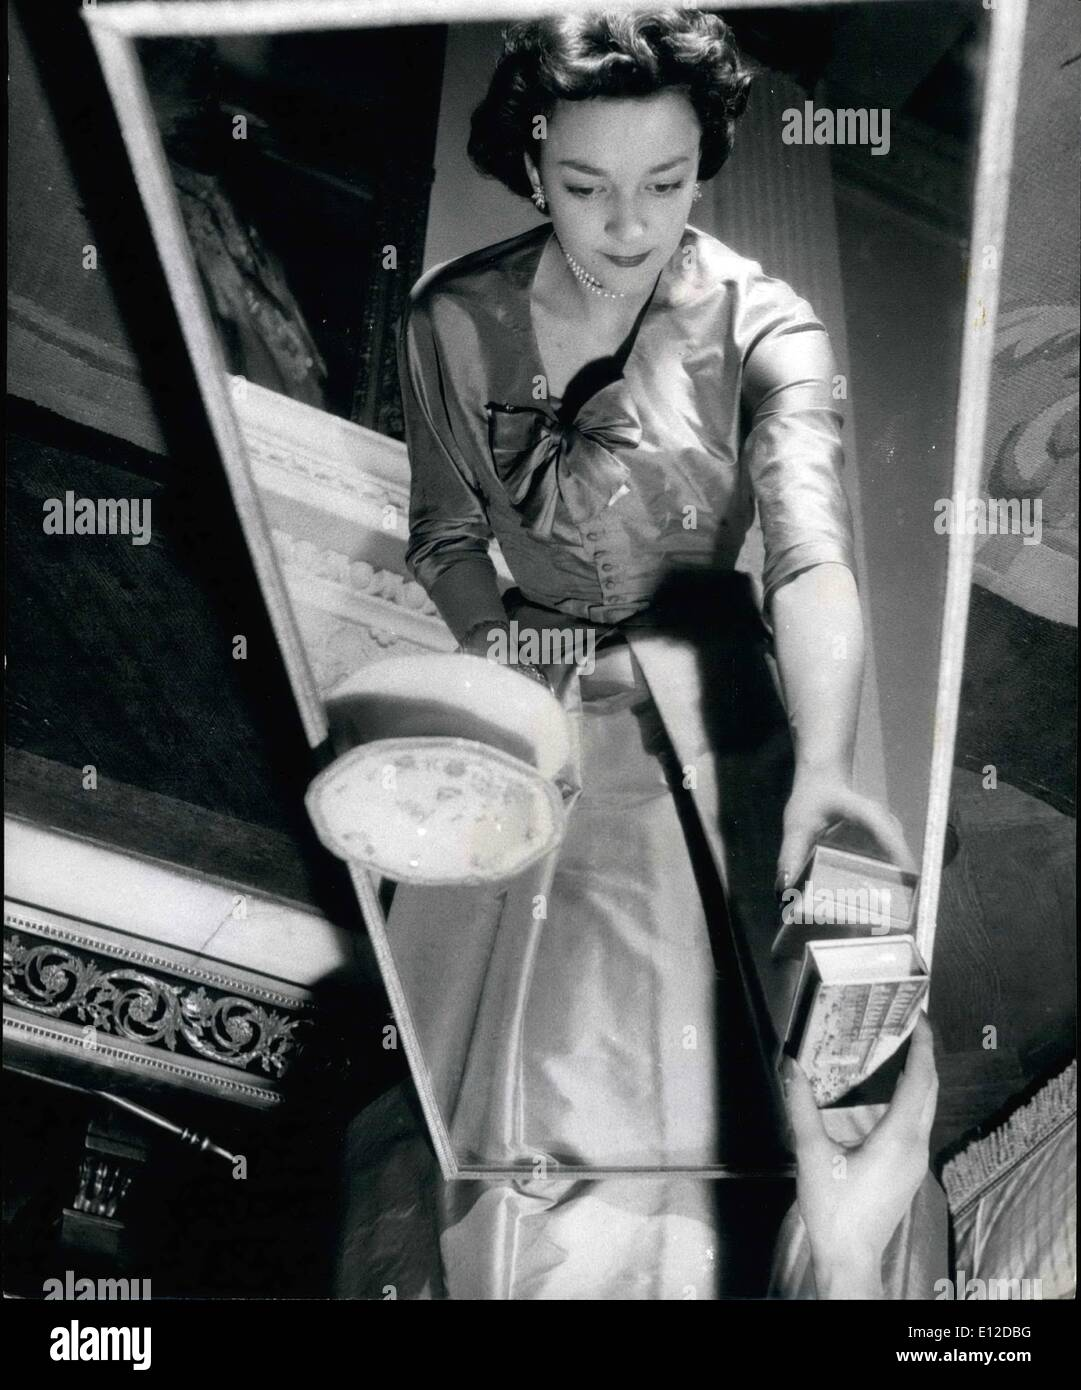 Dec. 19, 2011 - An unusual photograph of Lady Mary Baillie-Hamilton reflected in the mirror top table in the drawing room of her home at Chelsea. She Will Attend The Queen On Coronation Day: Six beautiful girls whose ages range from 17 to 83 have been chosen by the Queen to be her Maids of Honour at the Coronation Service. Queen Victoria set the precedent when she was crowned. Maids of Honour instead of the usual Pages carried her train. The girls are being trained by Mary, Duchess of Devonshire, Mistress of the Robes to the Queen - Stock Image